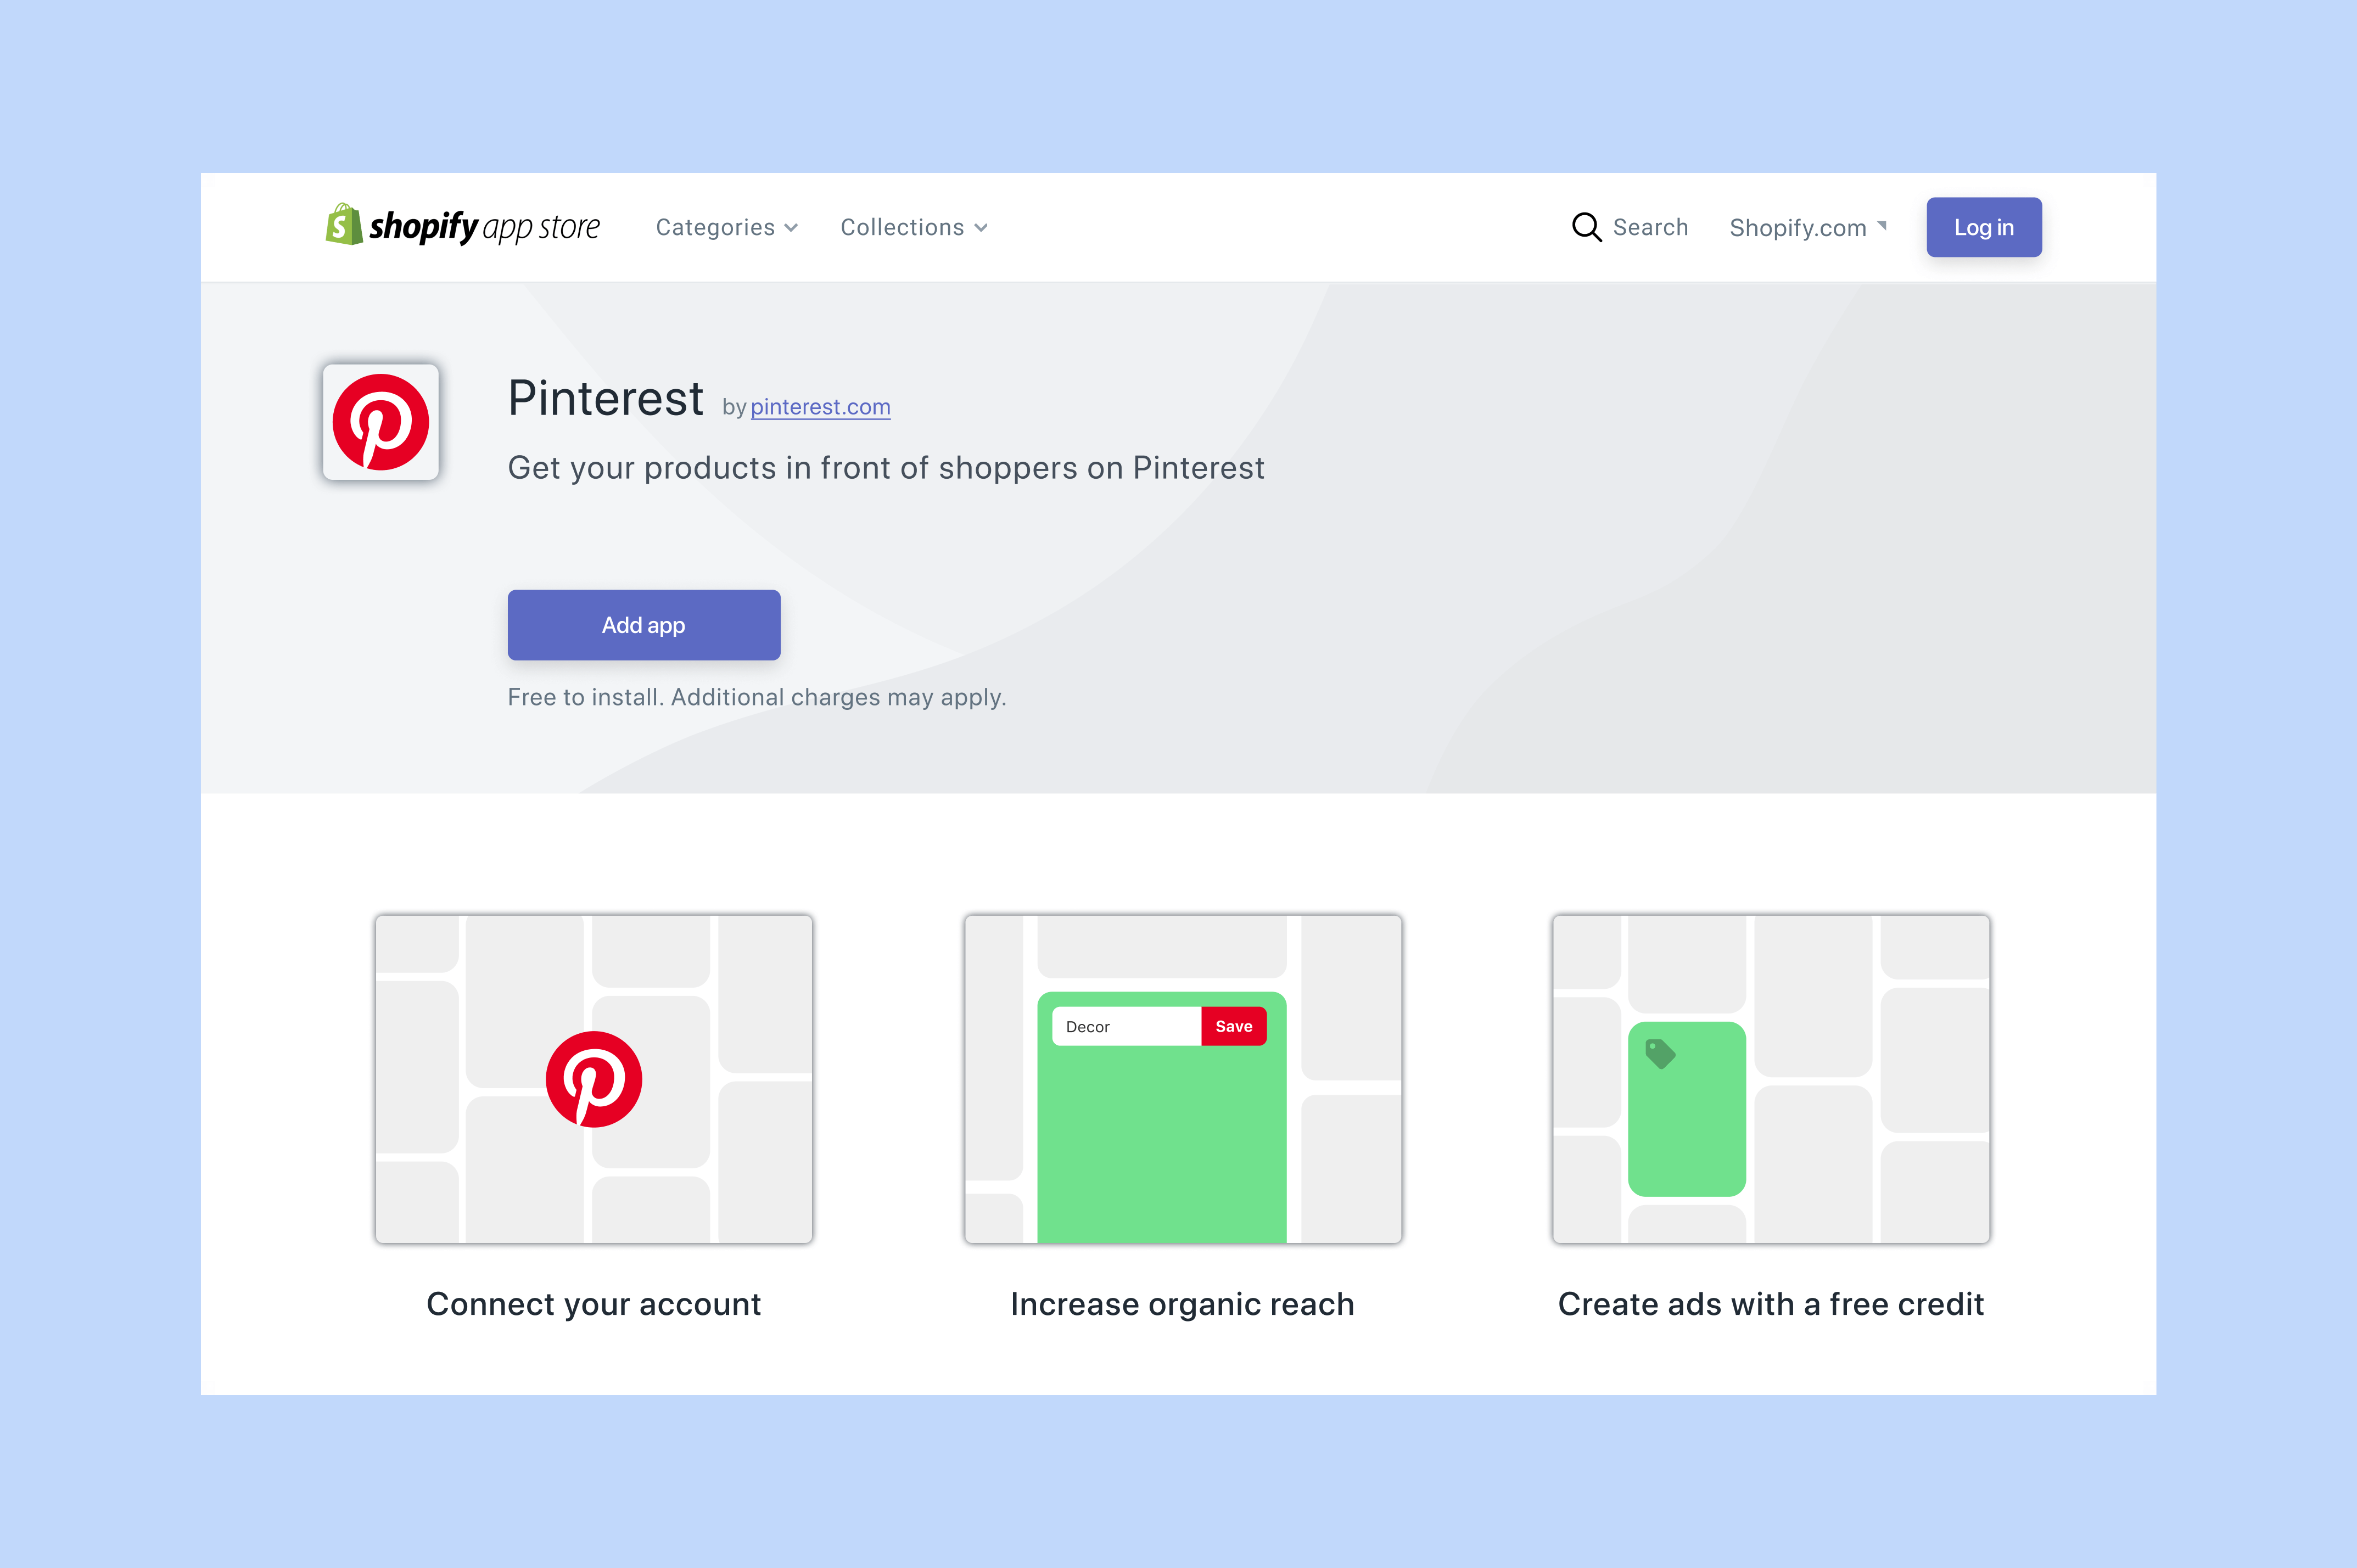 Image Source: https://newsroom.pinterest.com/en/post/pinterest-launches-shopify-app-for-easy-merchant-access-to-catalogs